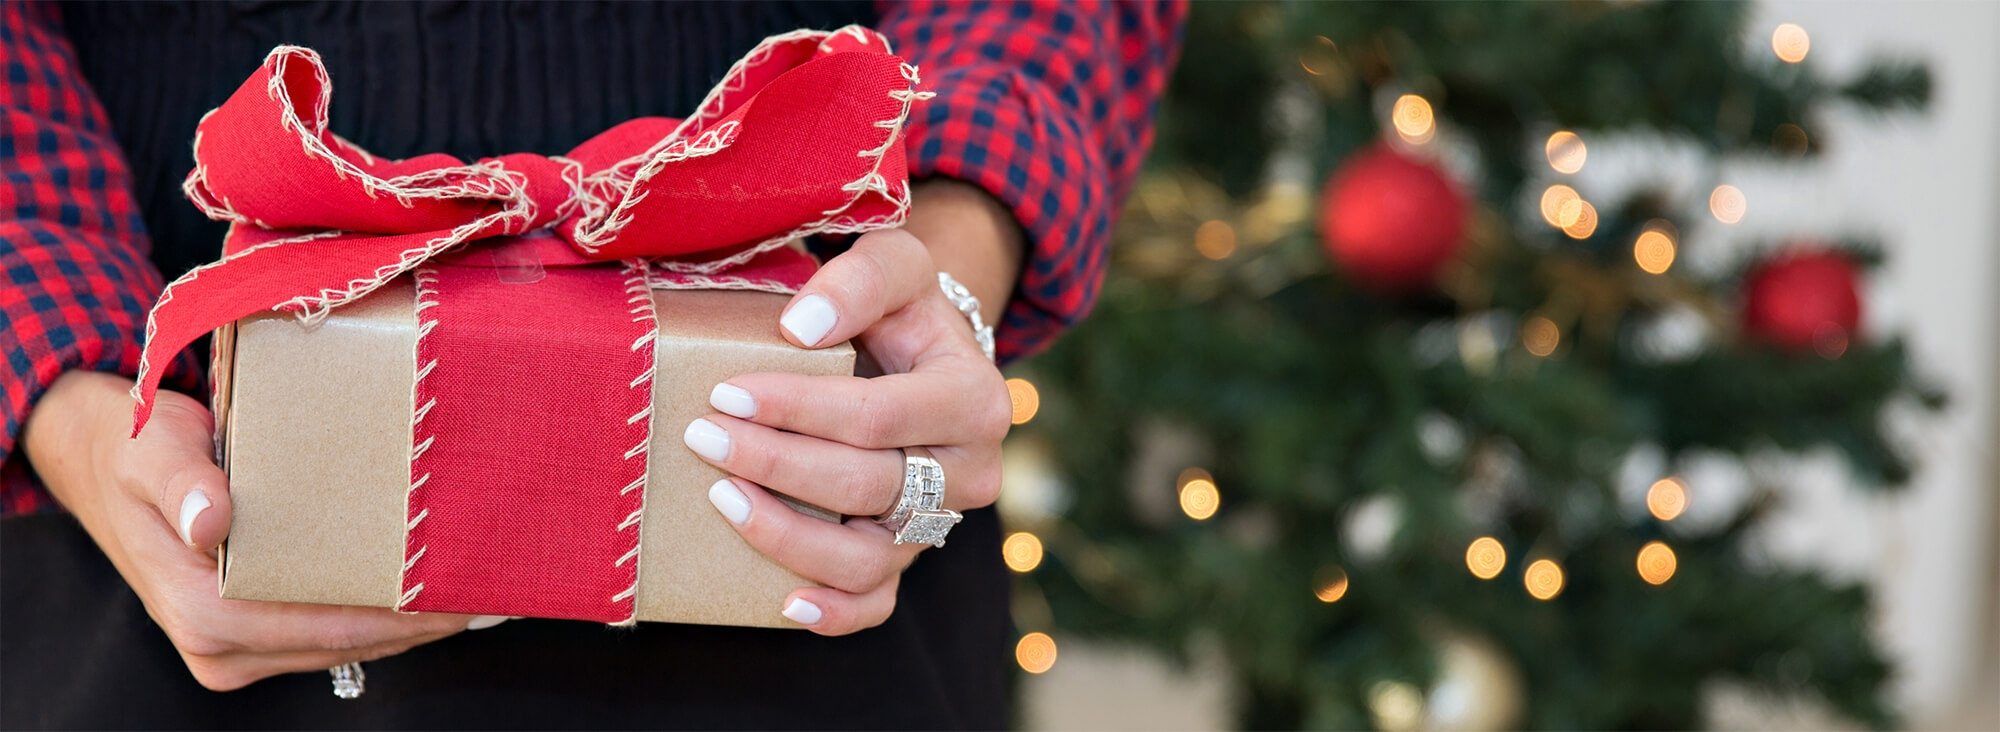 Woman wearing jewelry holding holiday gift